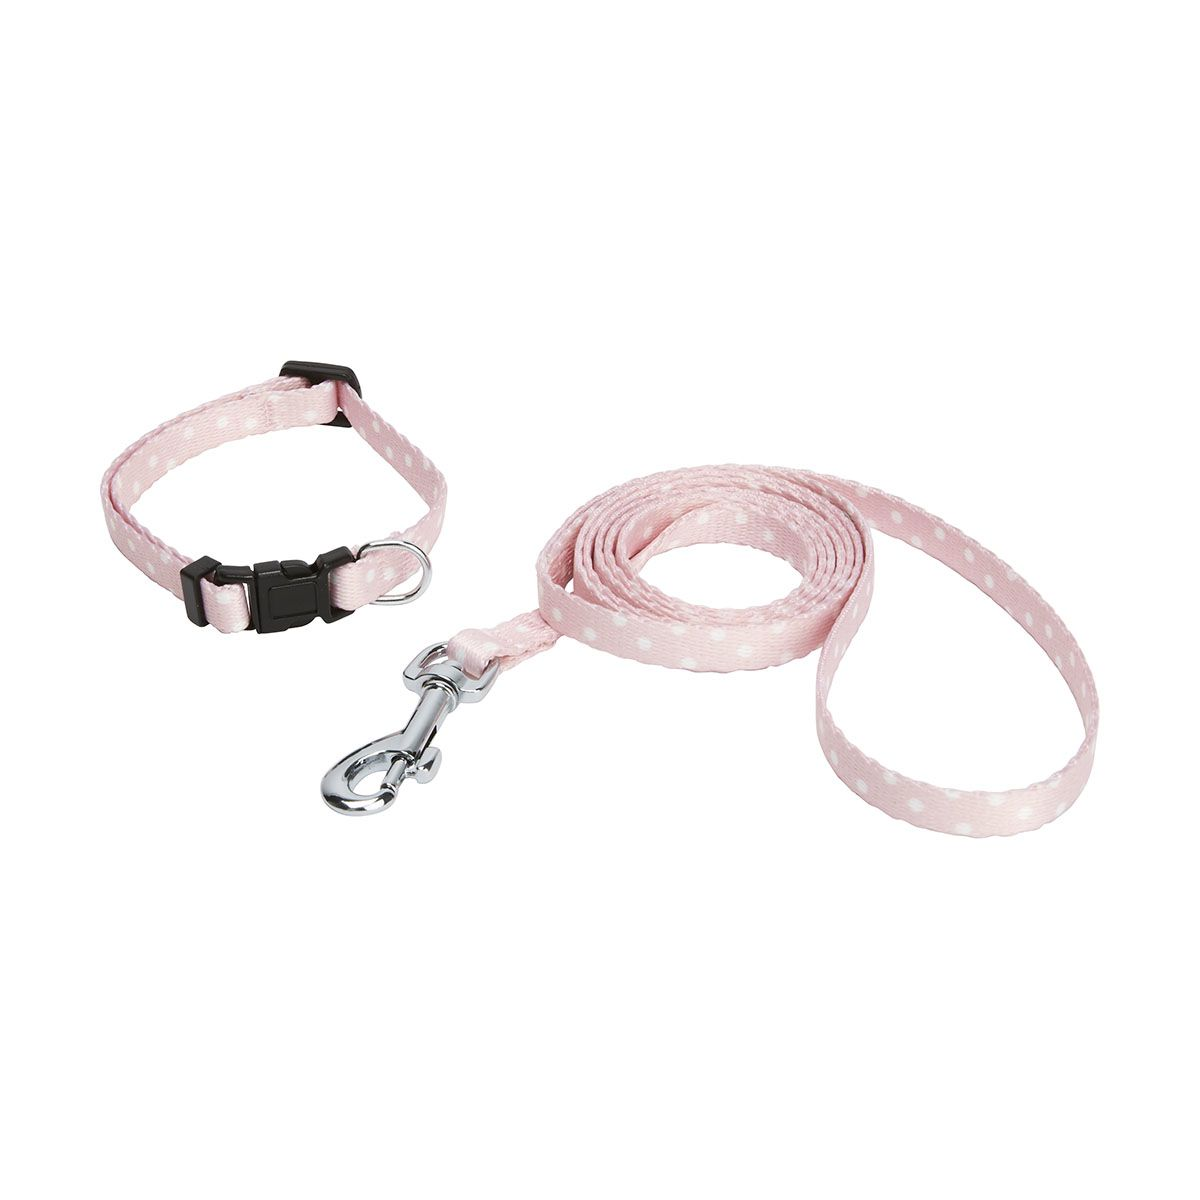 Puppy Collar Lead Set Kmart Dog Accessories Puppy Collars